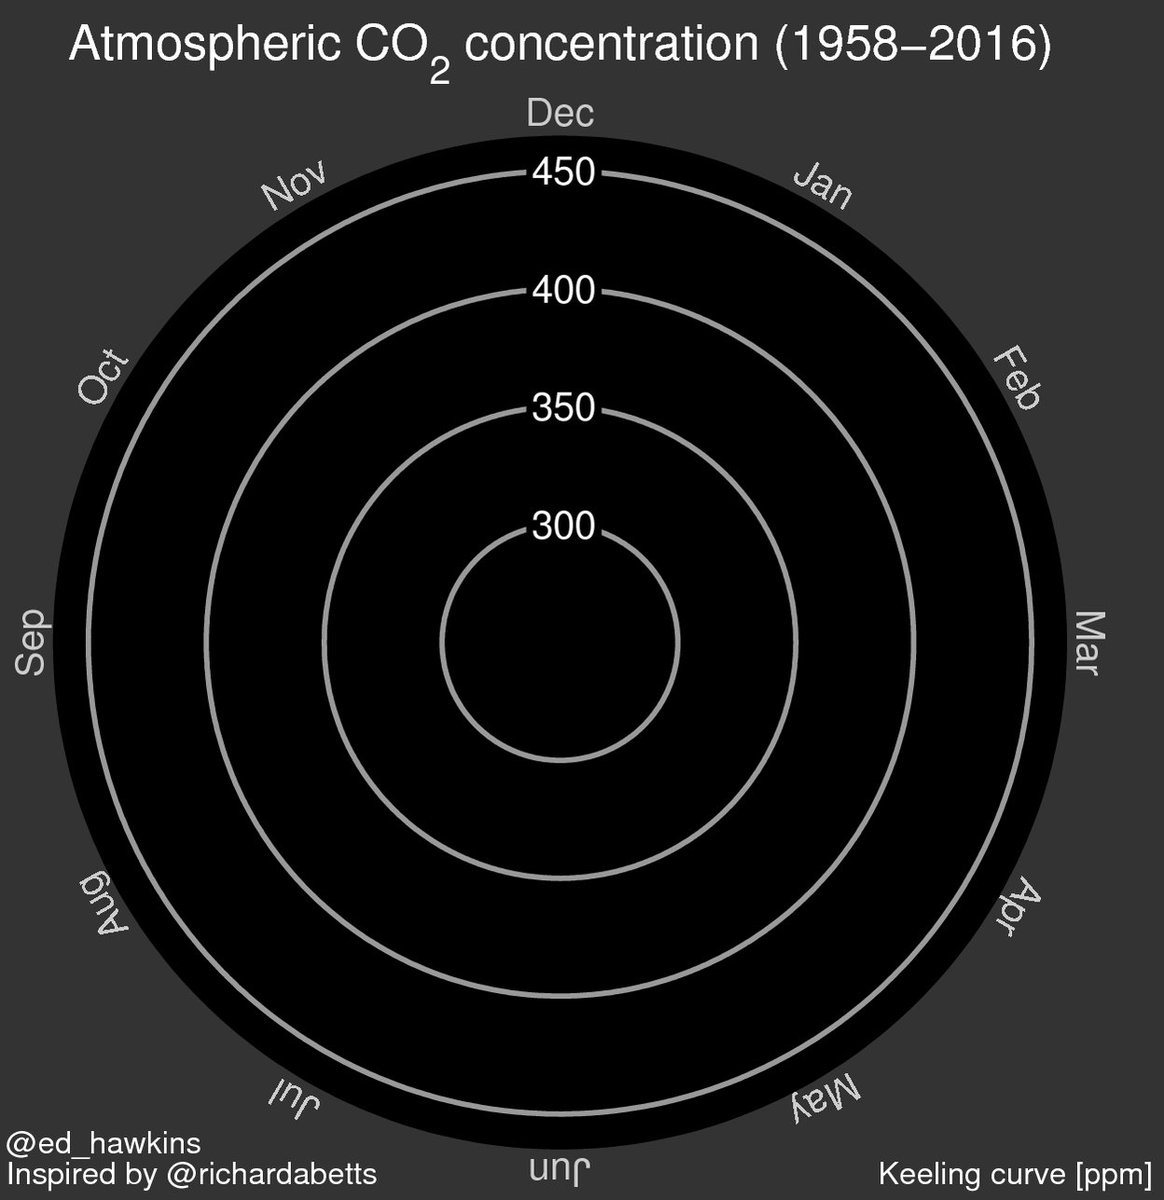 ..and from @ed_hawkins here's a spiral graph of the Mauna Loa CO2 record + our forecast of > 400 ppm for all of 2016 https://t.co/coFan9AArQ